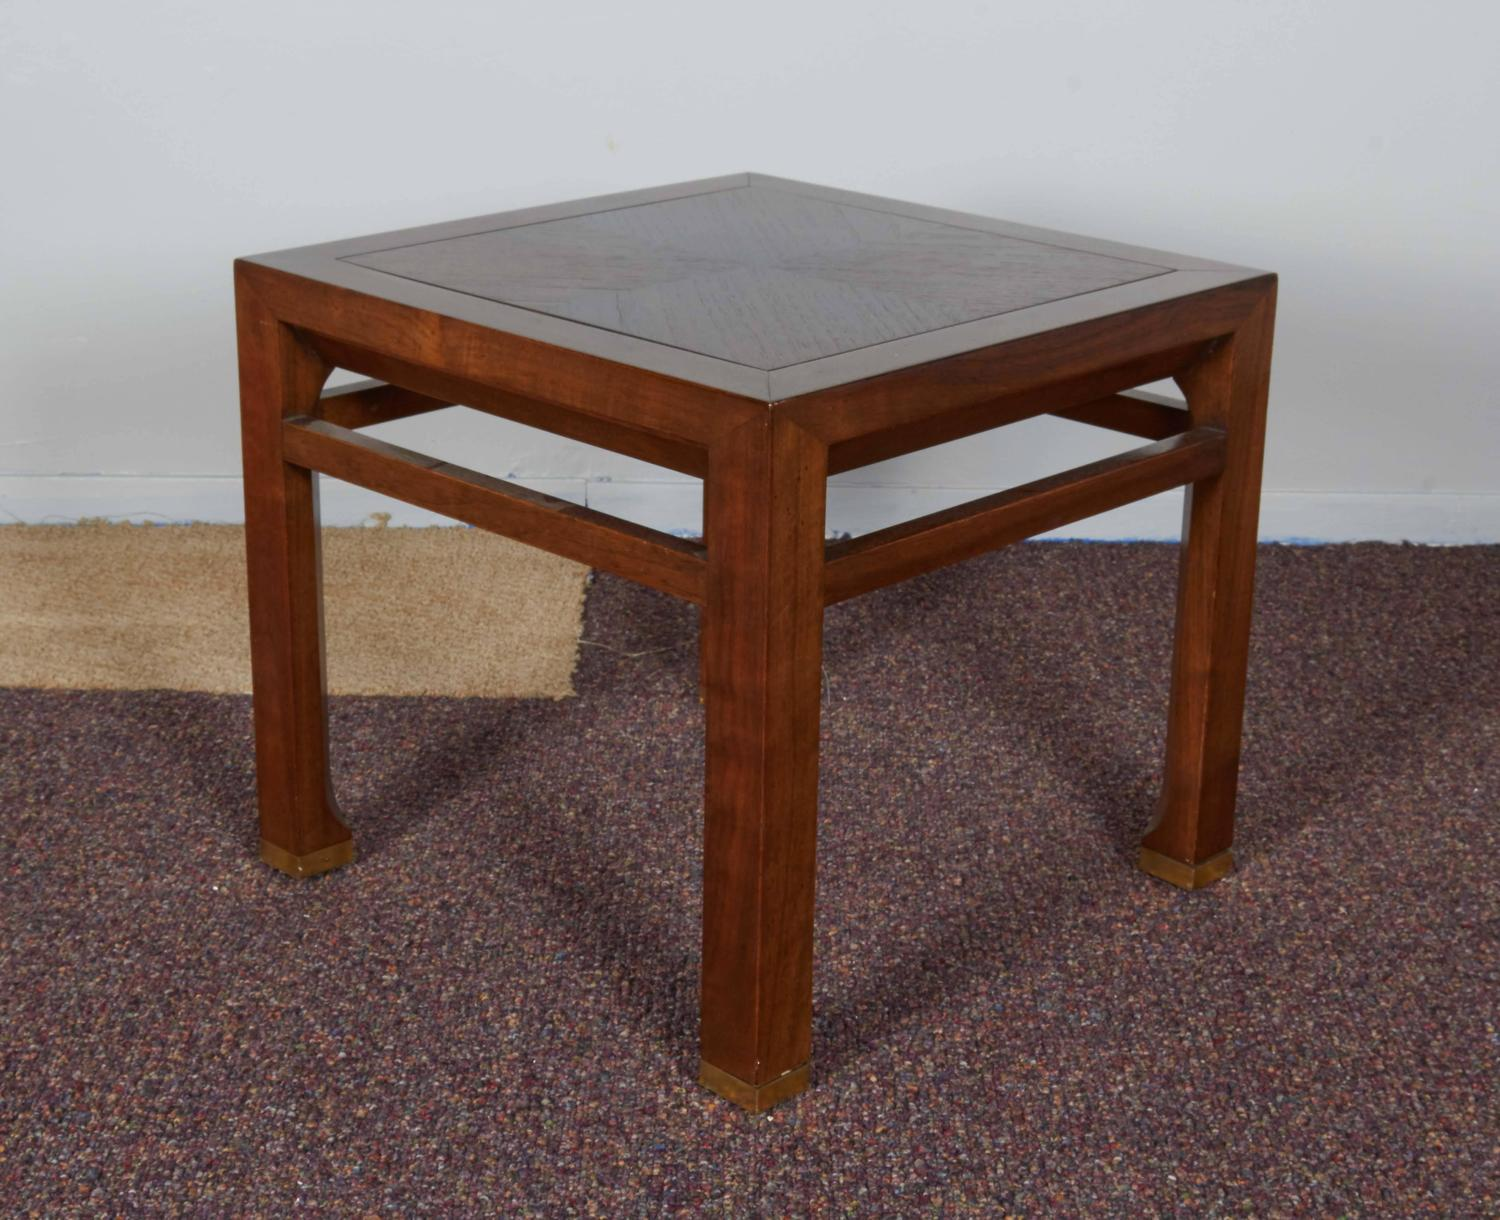 Baker Furniture Side Table With Bookmatched Top For Sale At 1stdibs